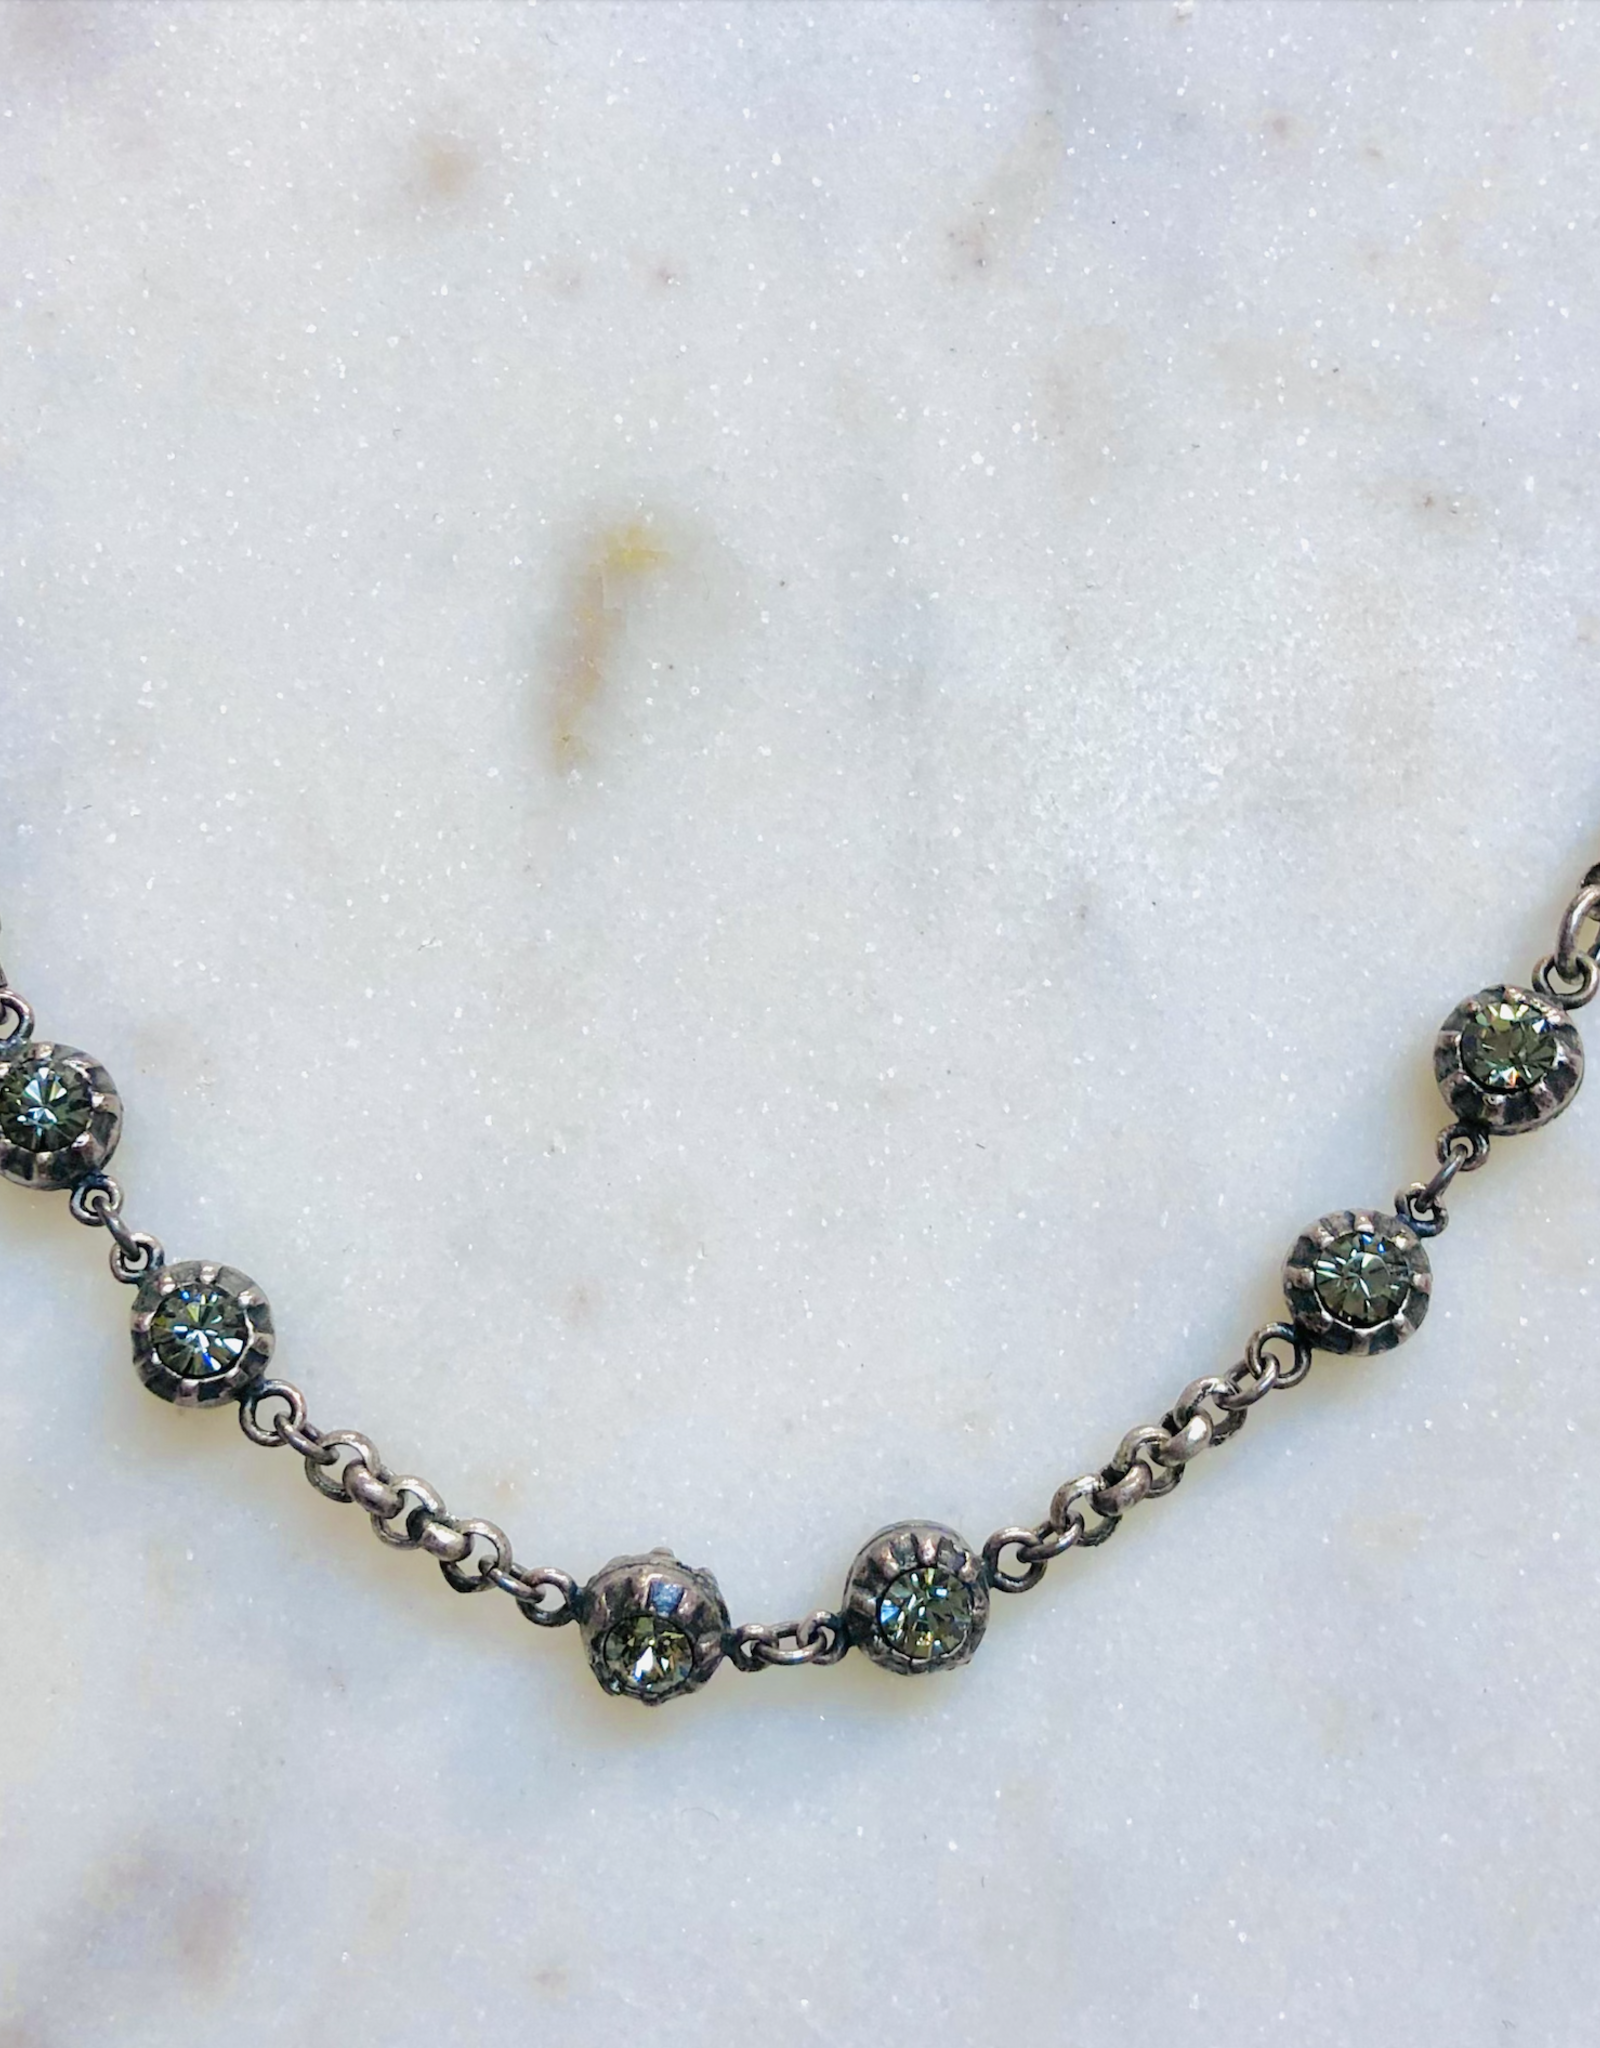 LA VIE PARISIENNE INC BRACELET KNOTTED CHAIN WITH RHINESTONE BEADS SILVER